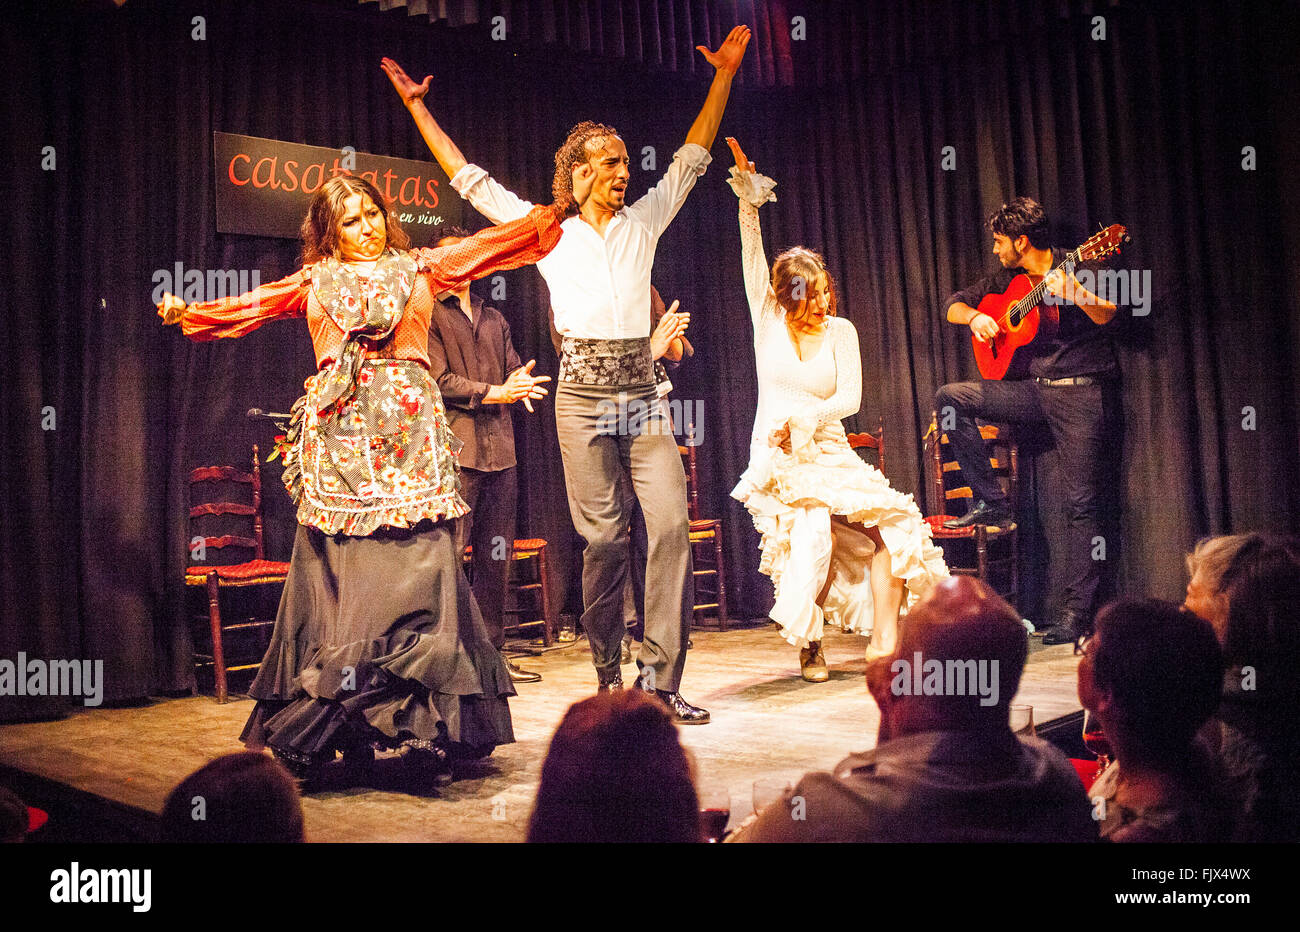 Casa Patas, tablao flamenco, Calle de los Canizares 10, Madrid, Spain. - Stock Image